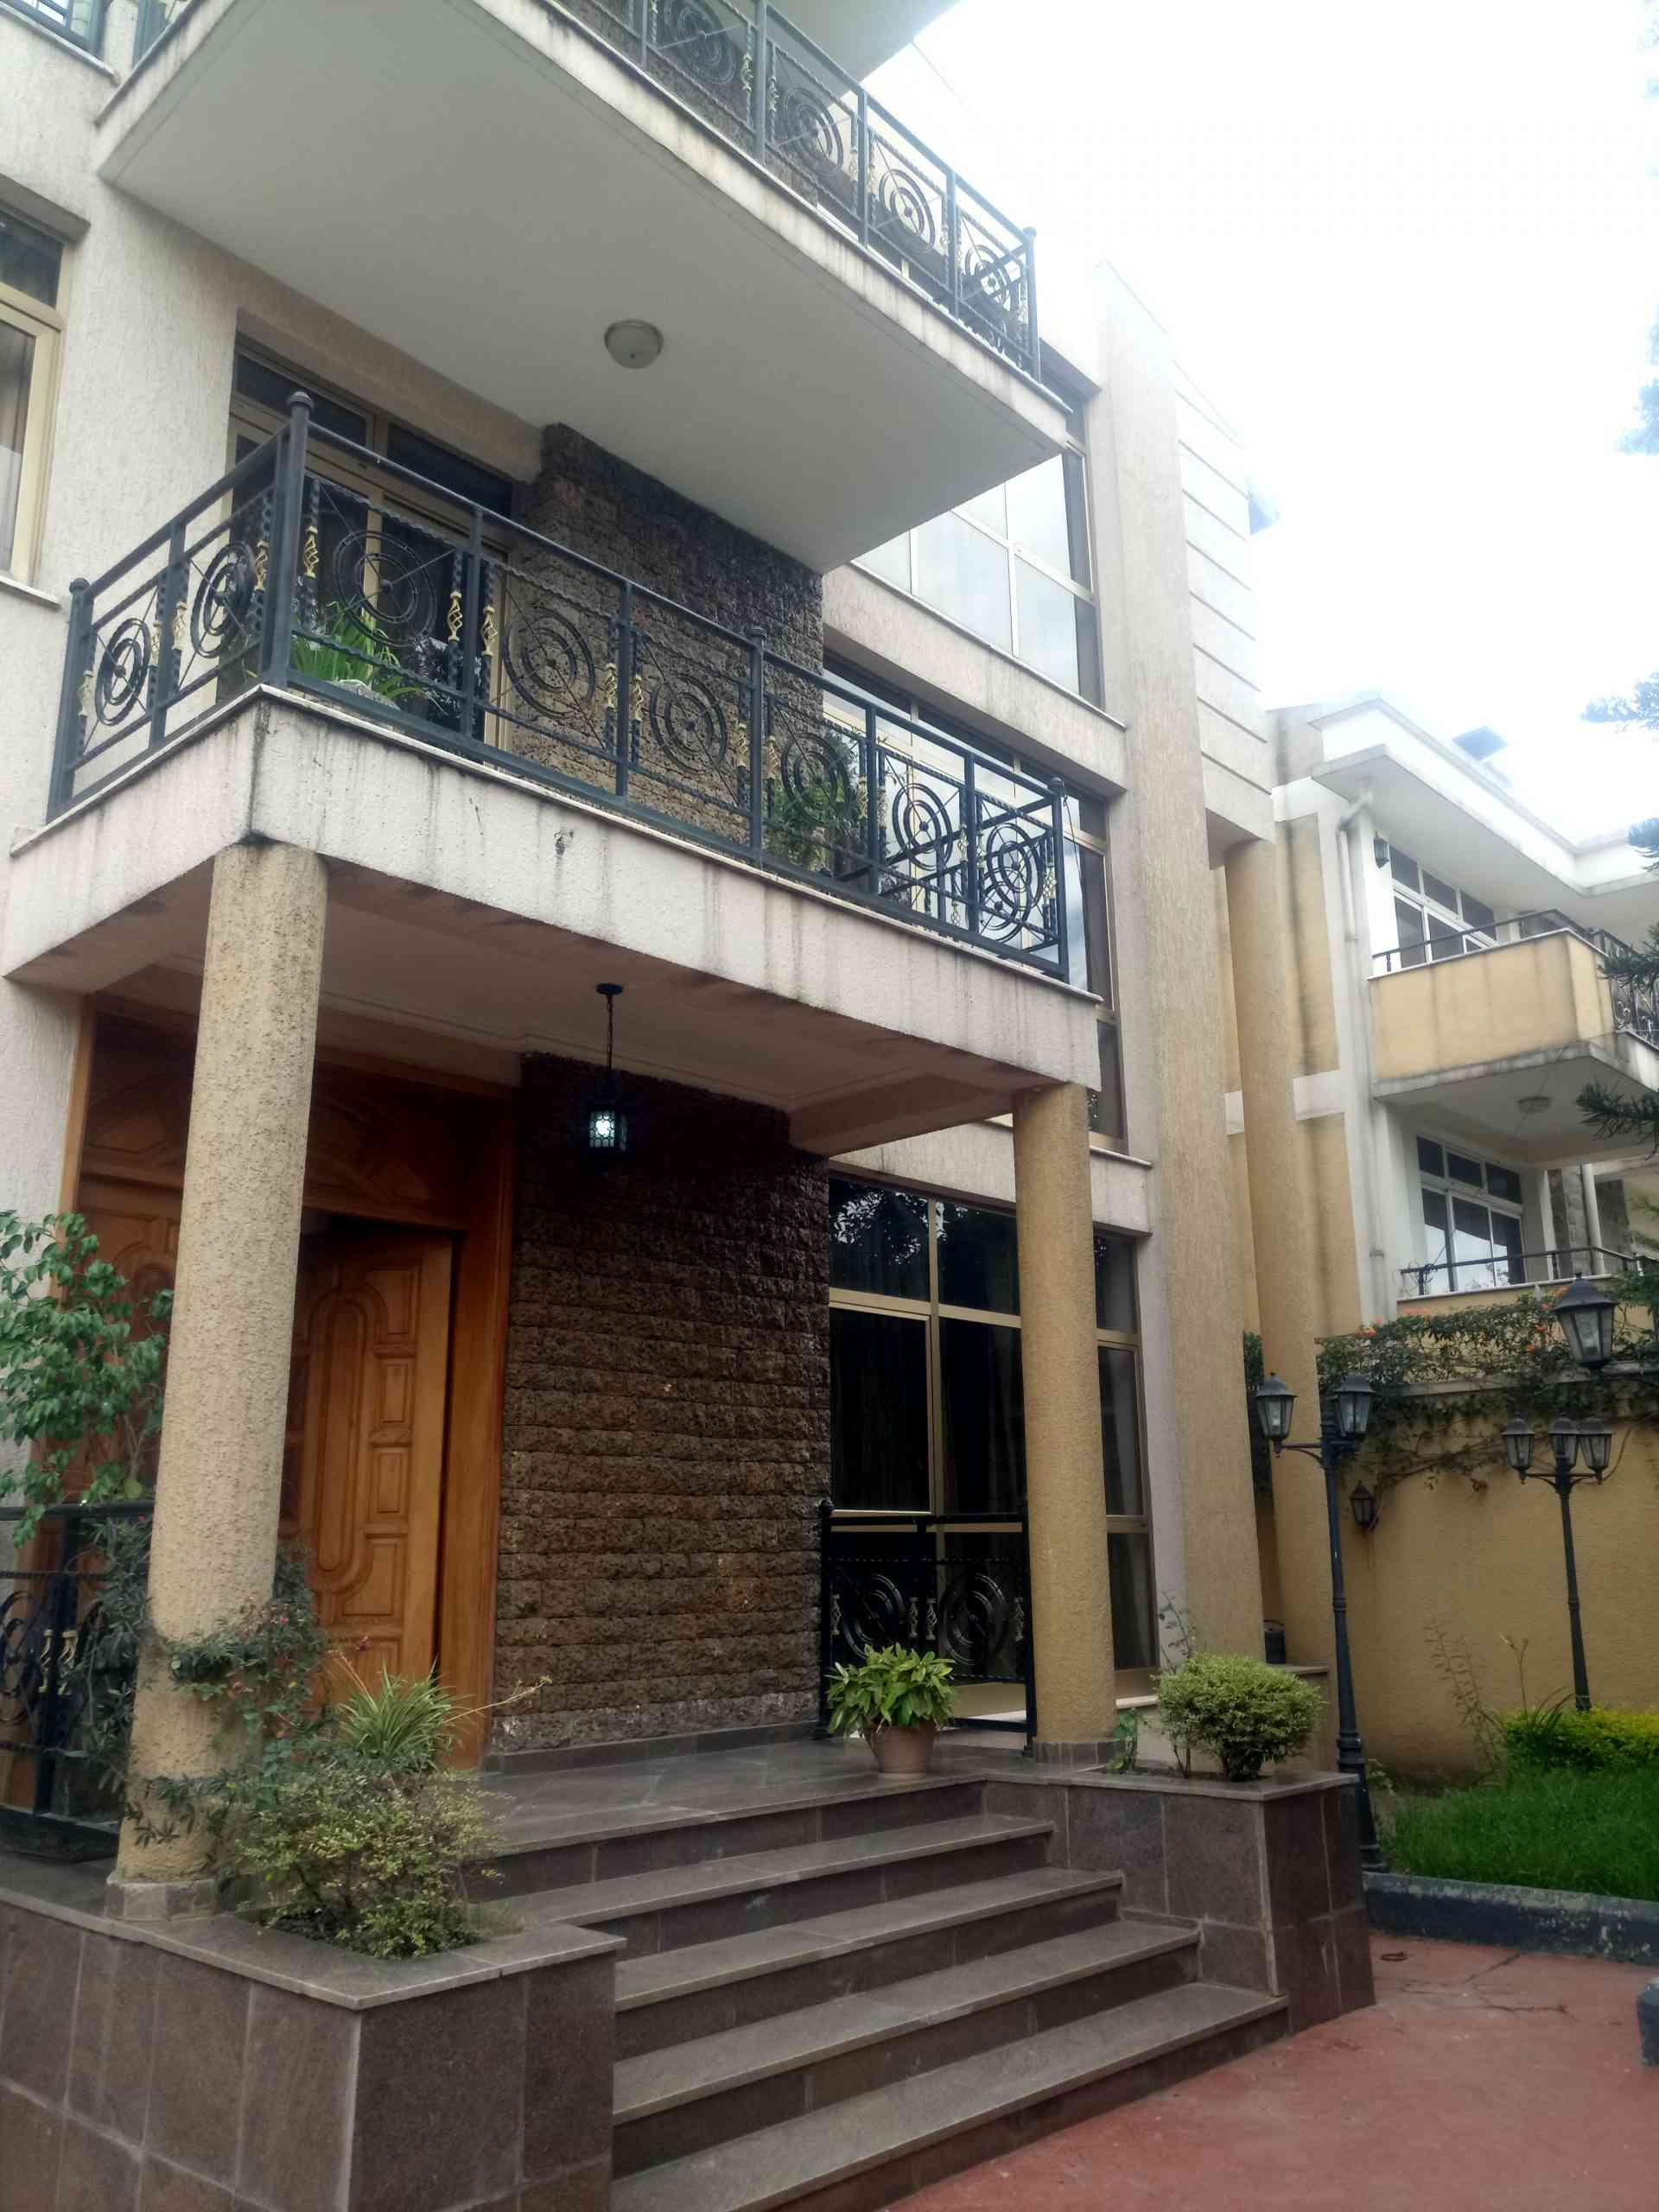 7 Bedroom House For Sale In Addis Ababa-Bole